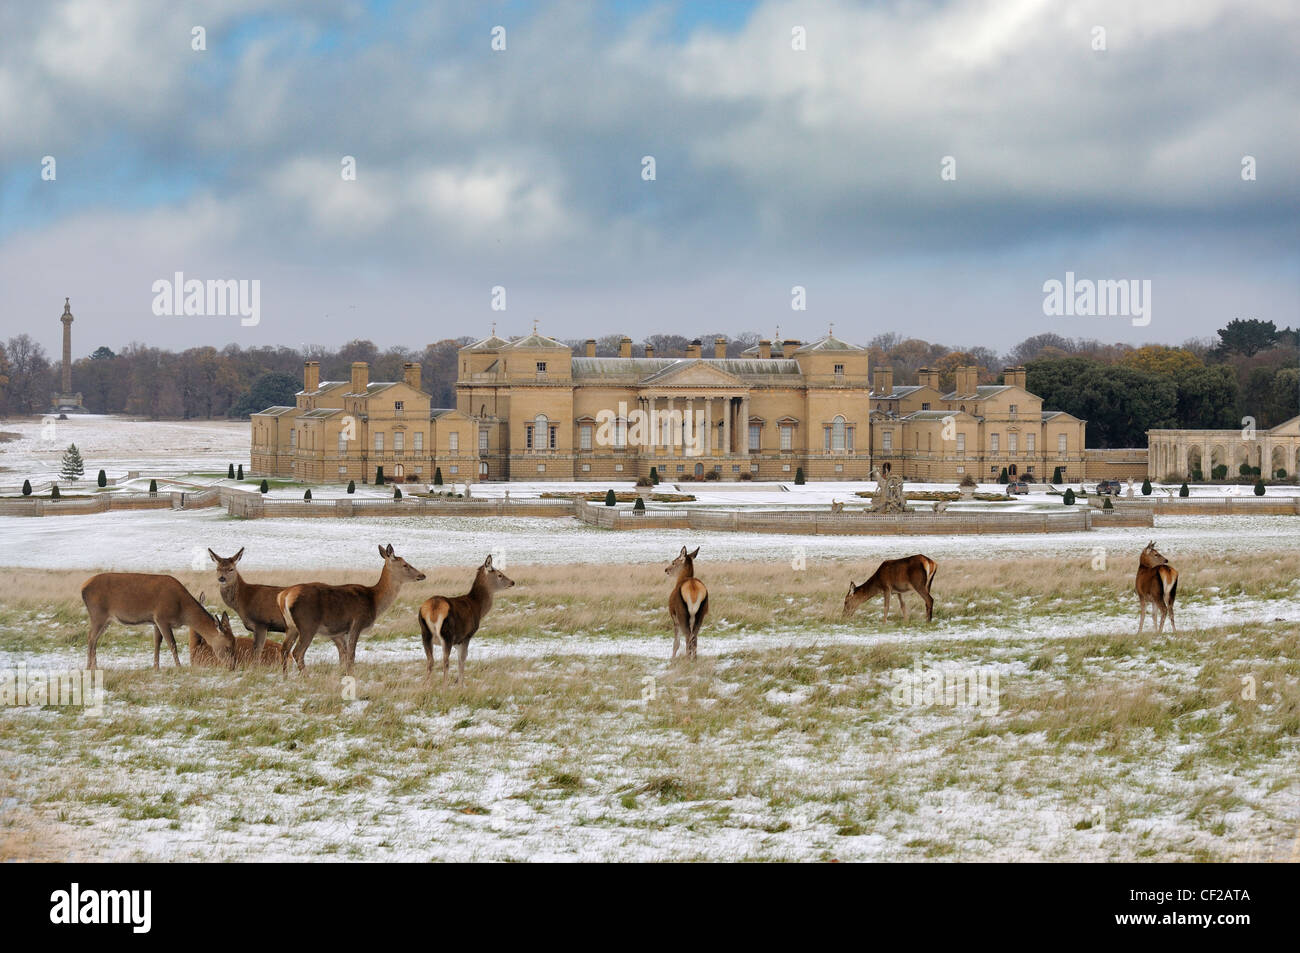 Holkham Hall and estate after a snowfall, with deer in foreground. - Stock Image